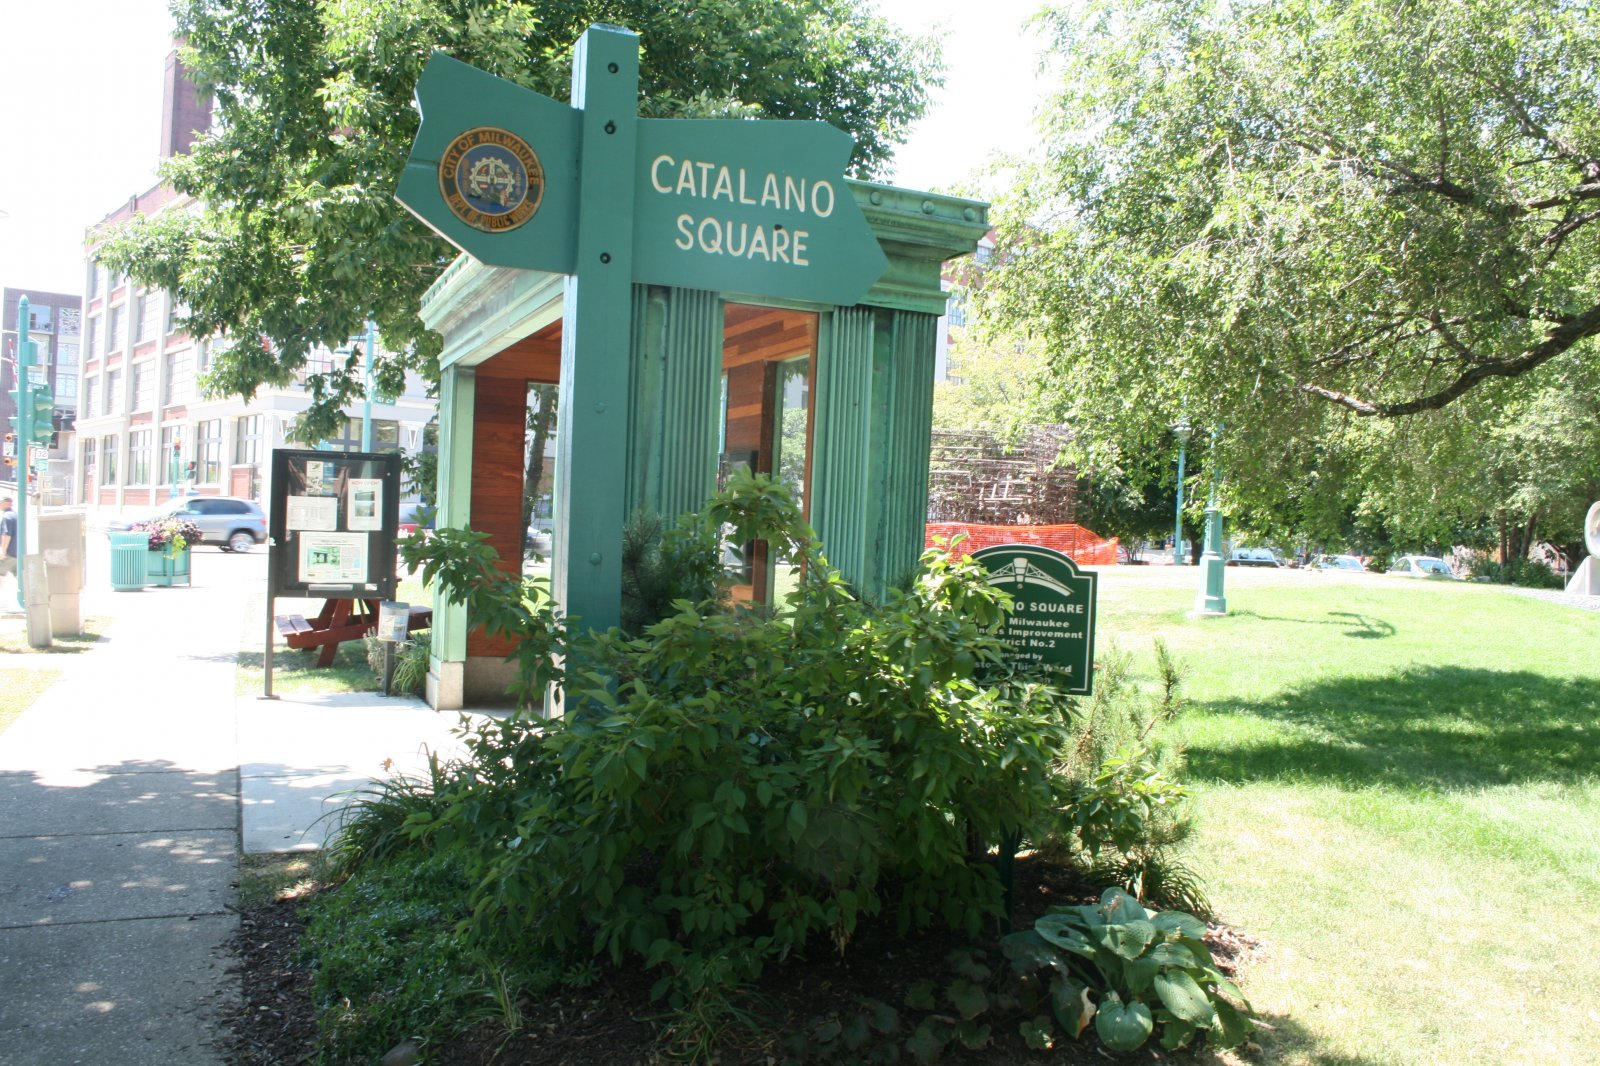 Streetcar Stop at Catalano Square